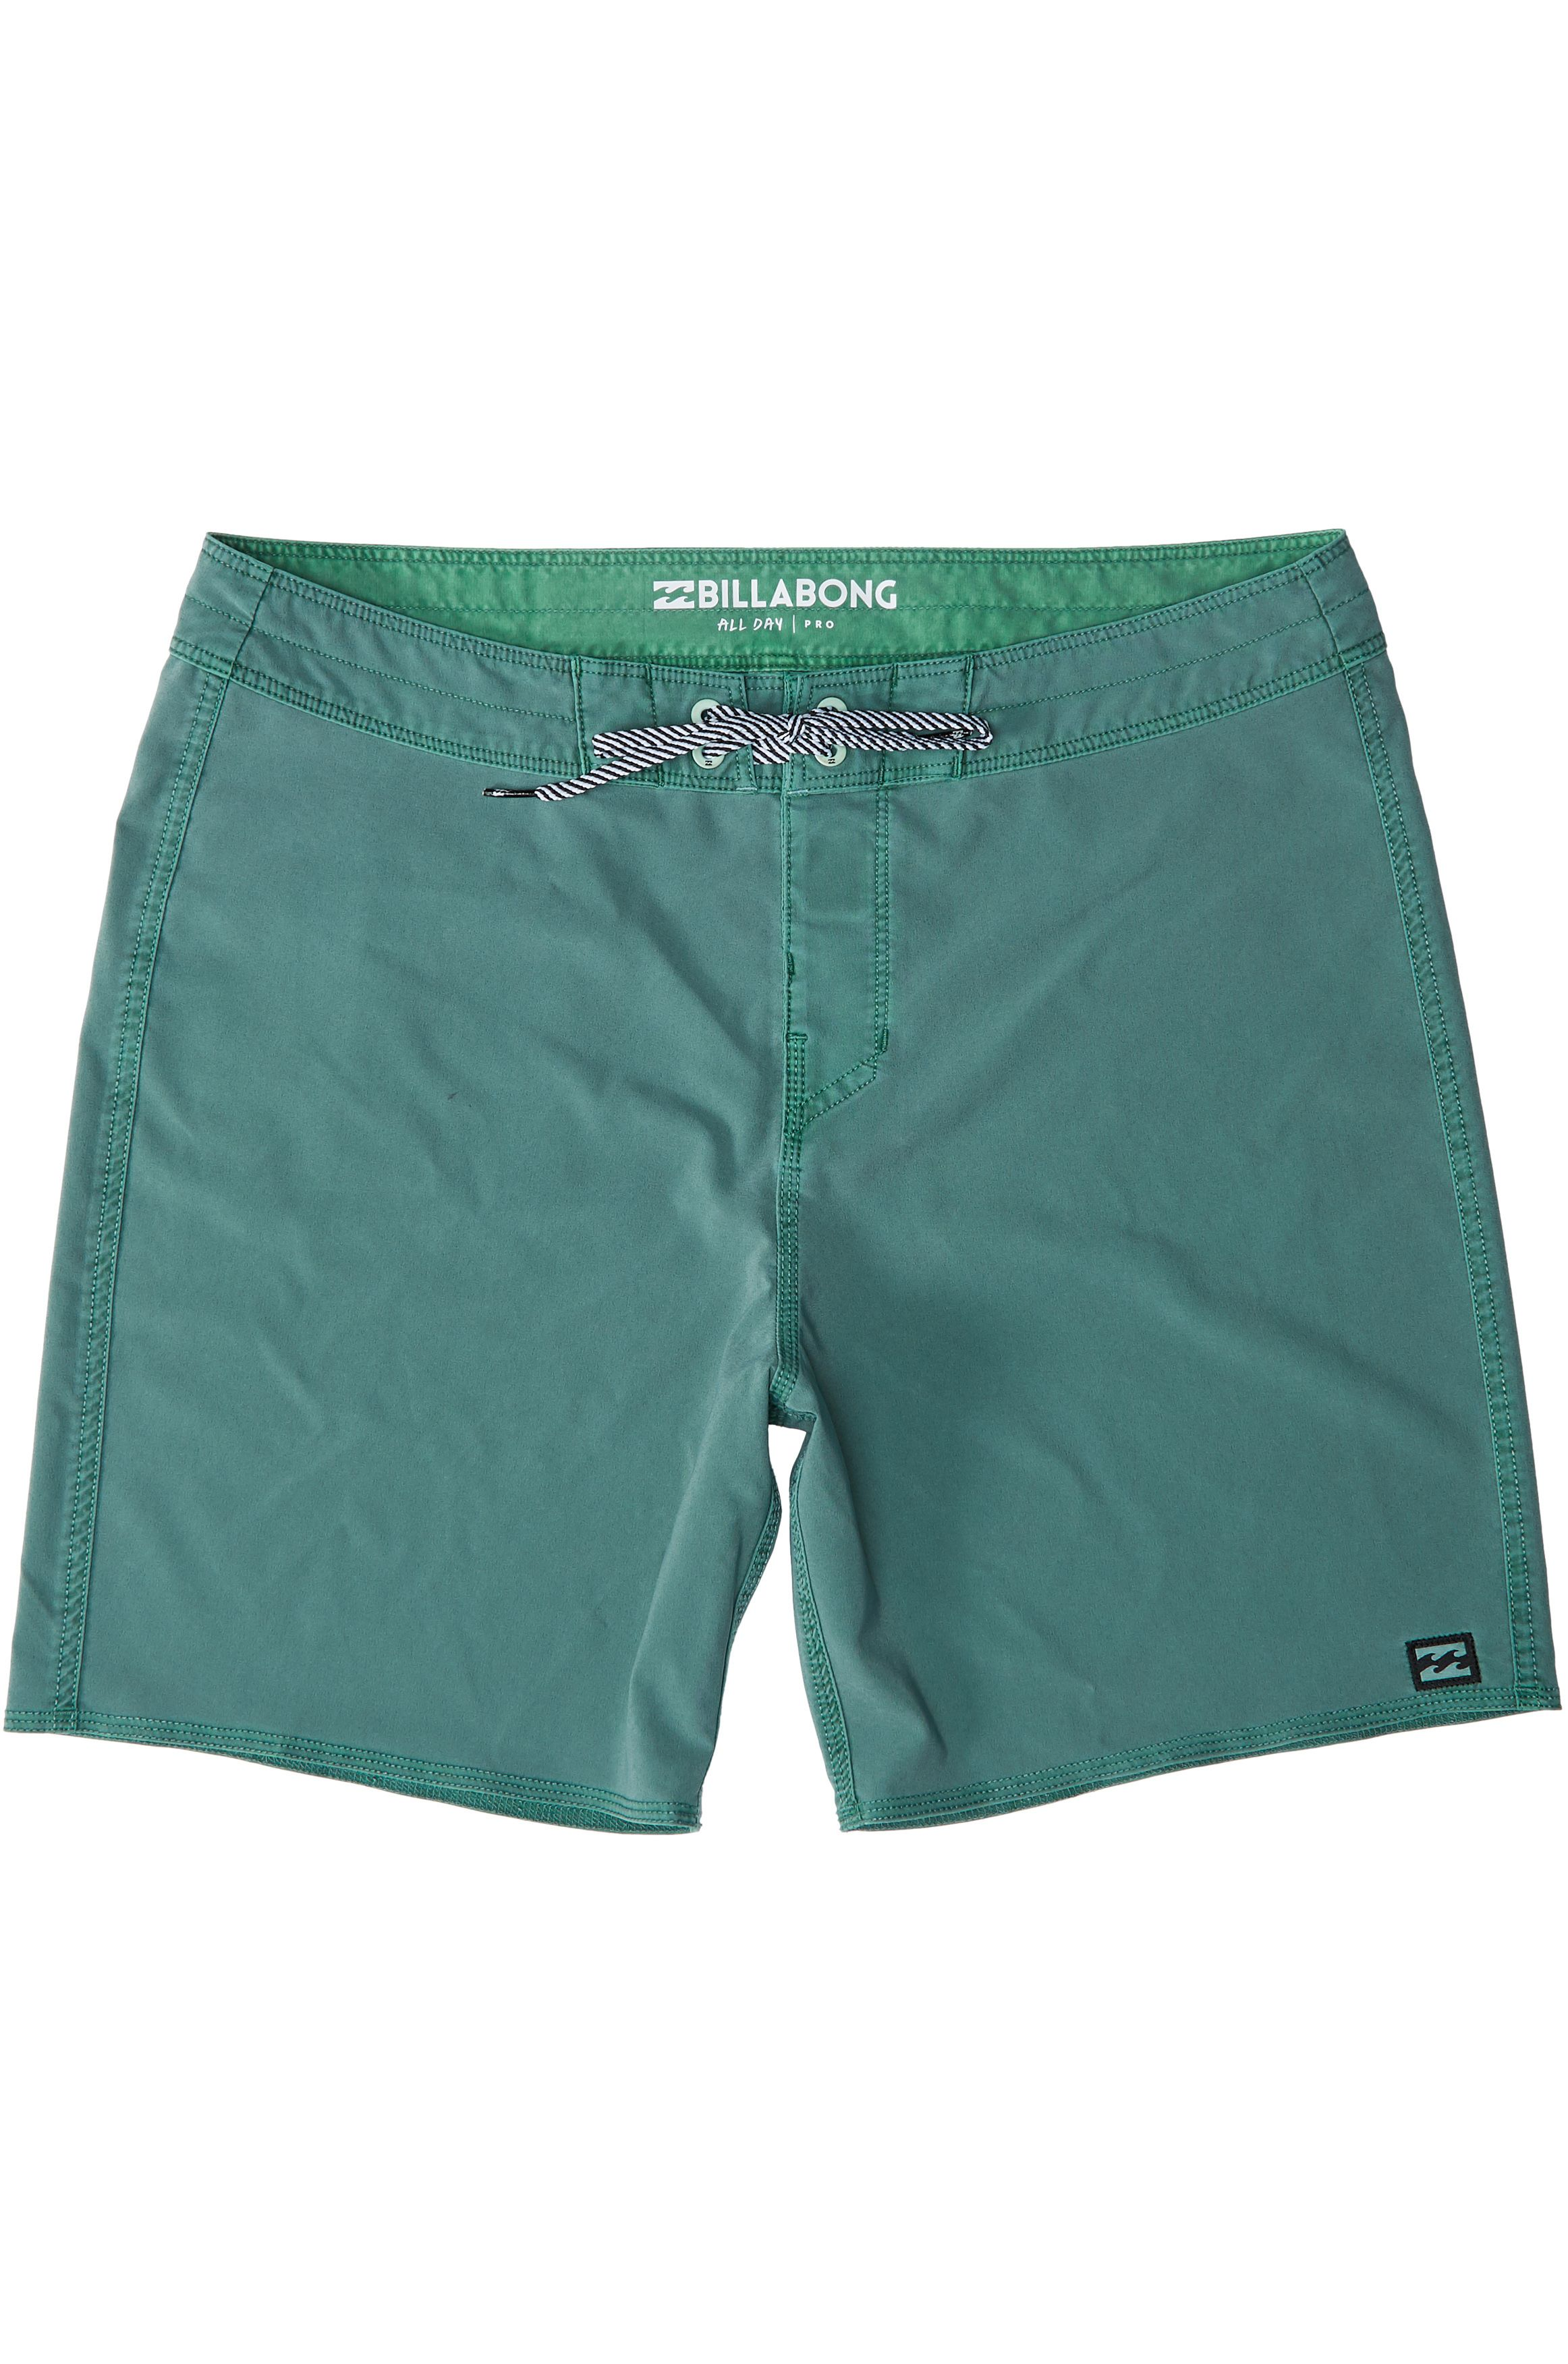 Boardshorts Billabong ALL DAY OVD PRO Dust Green